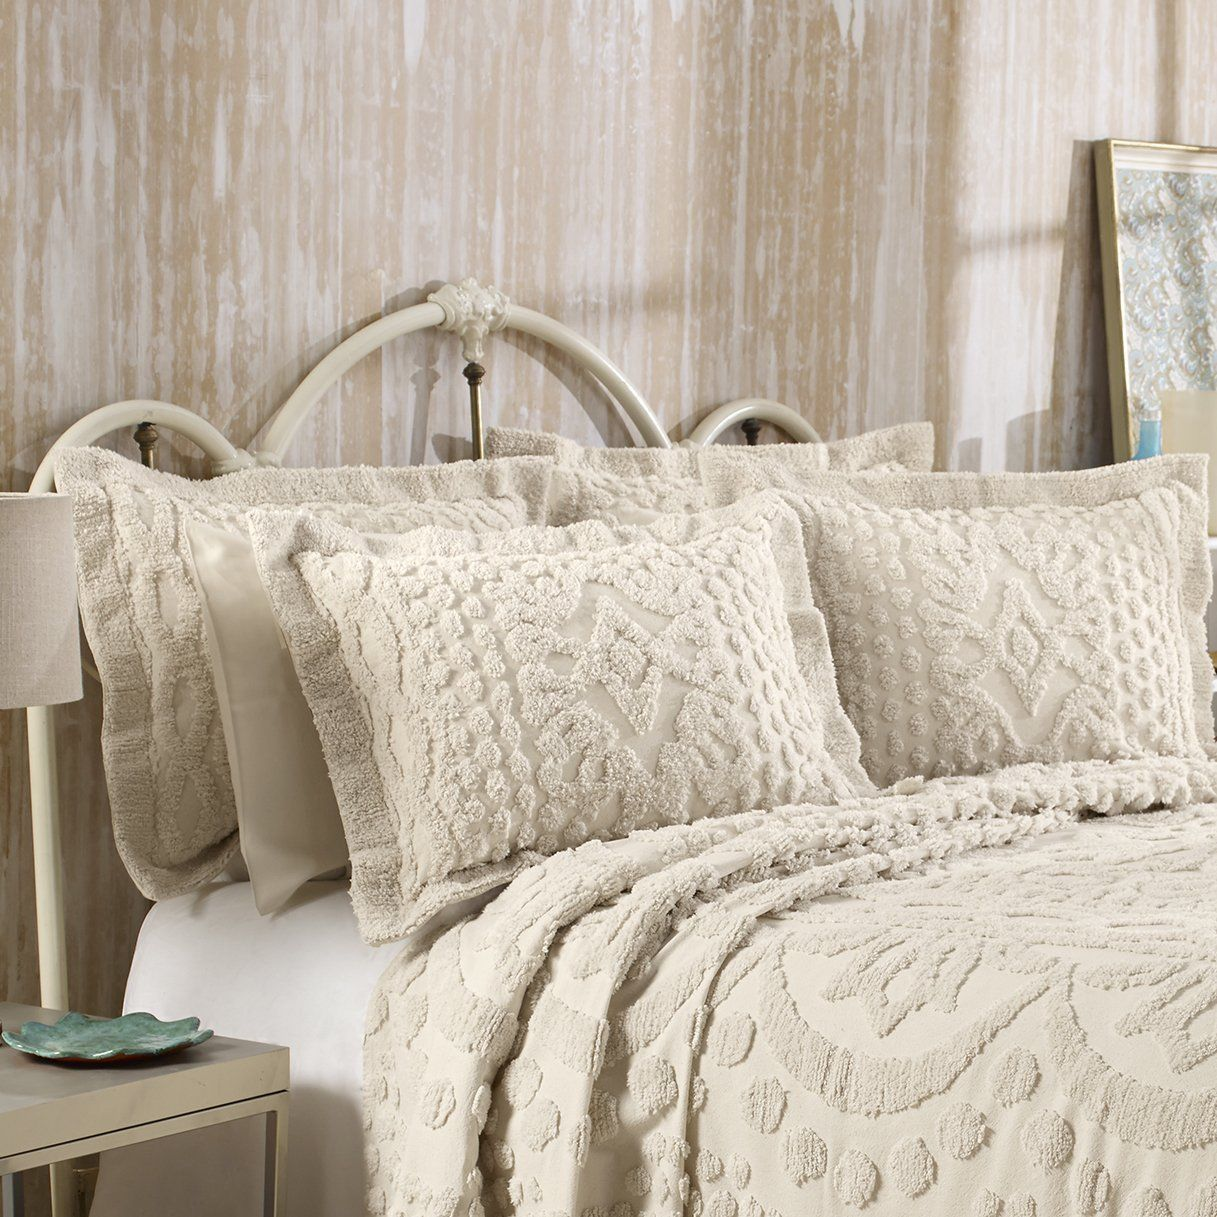 KINGSTON TUFTED CHENILLE BEDSPREAD AND PILLOW SHAM SET, ALL COTTON, QUEEN SIZE, BEIGE